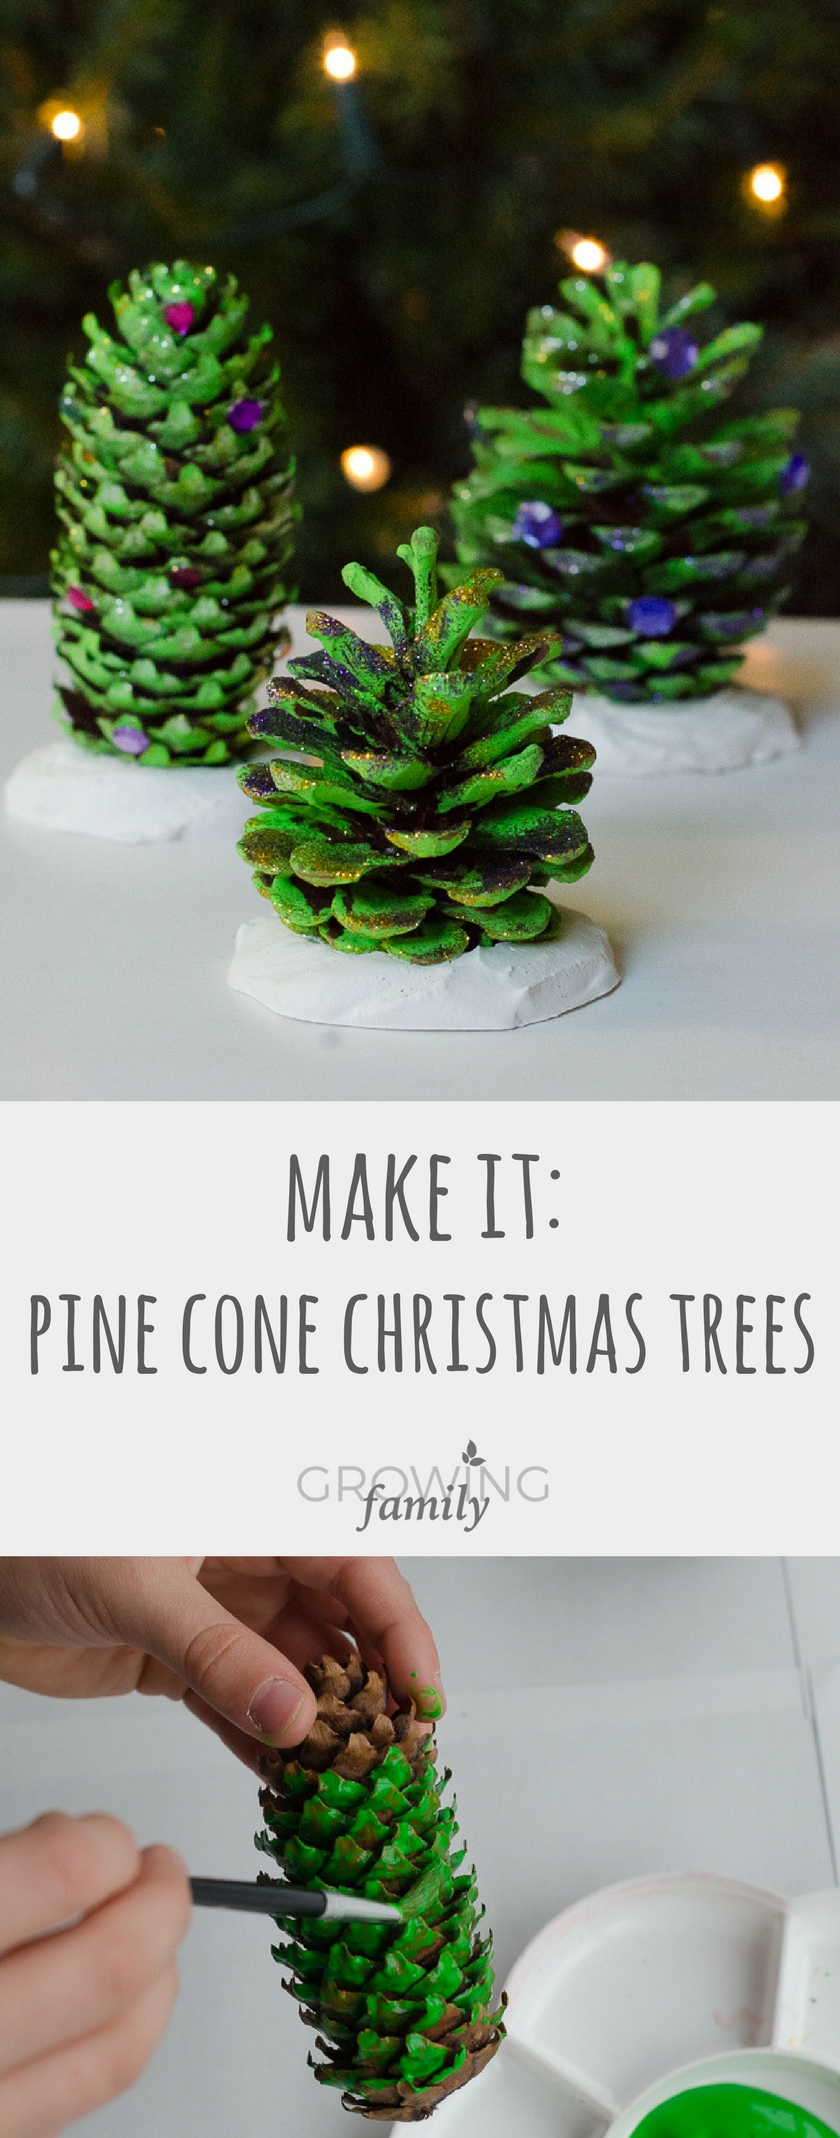 Natural christmas decorations pine cone trees growing for How to make xmas decorations with pine cones